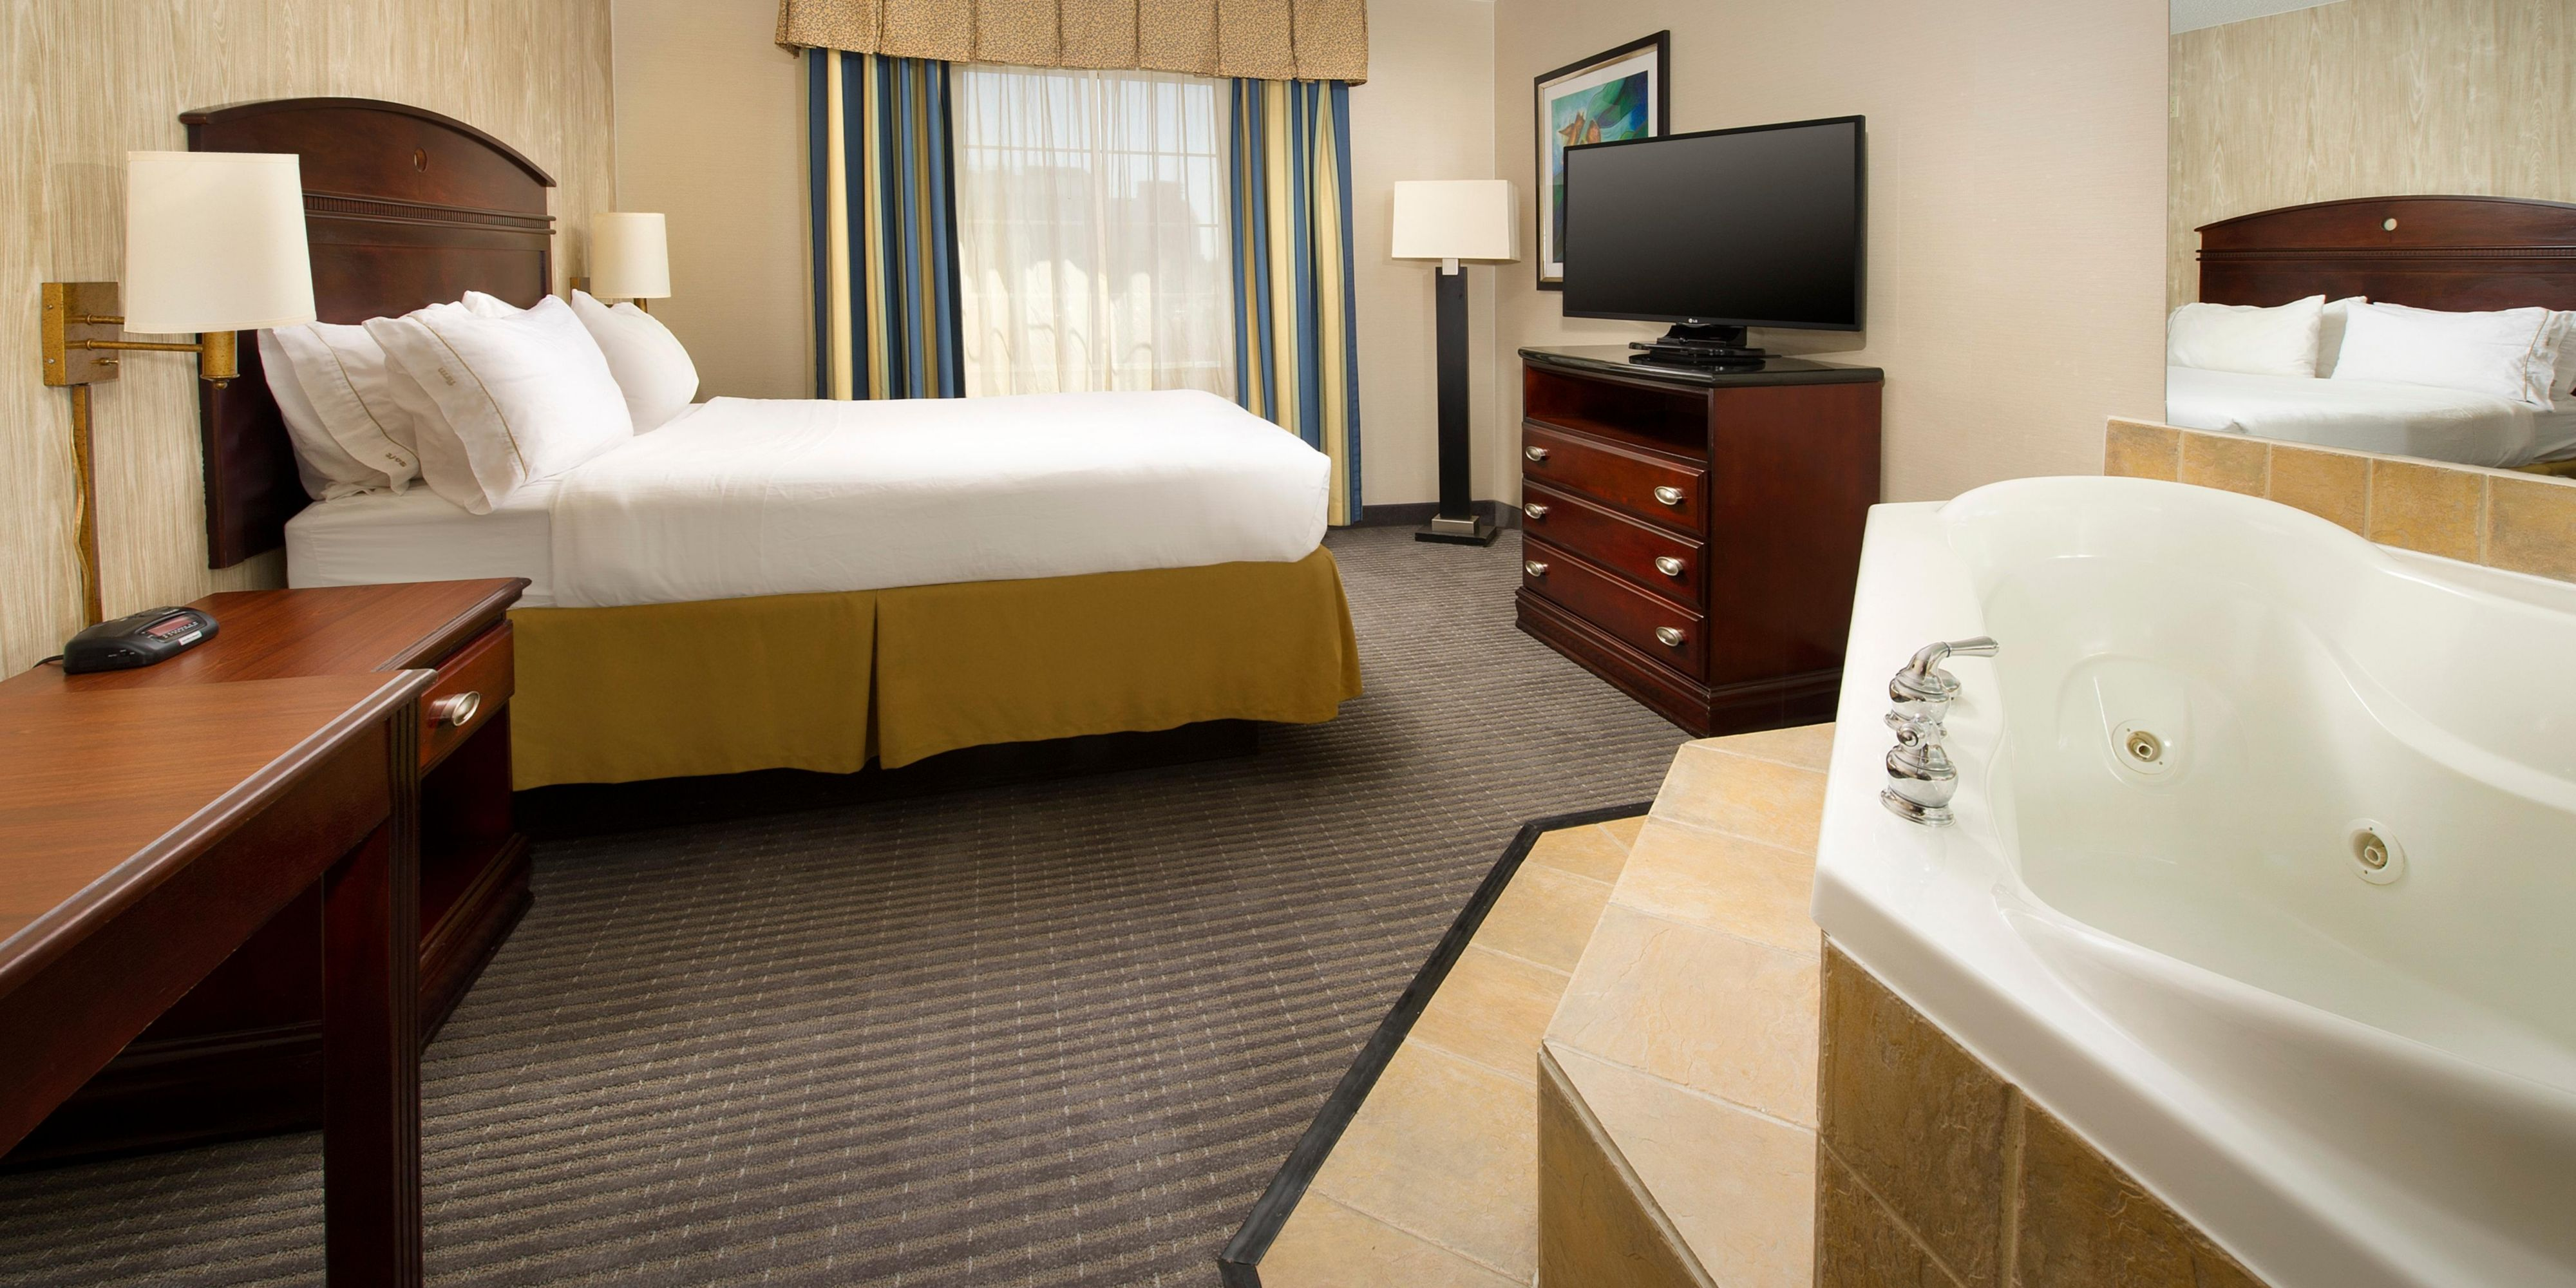 Holiday Inn Express And Suites Annapolis 4437990535 2x1